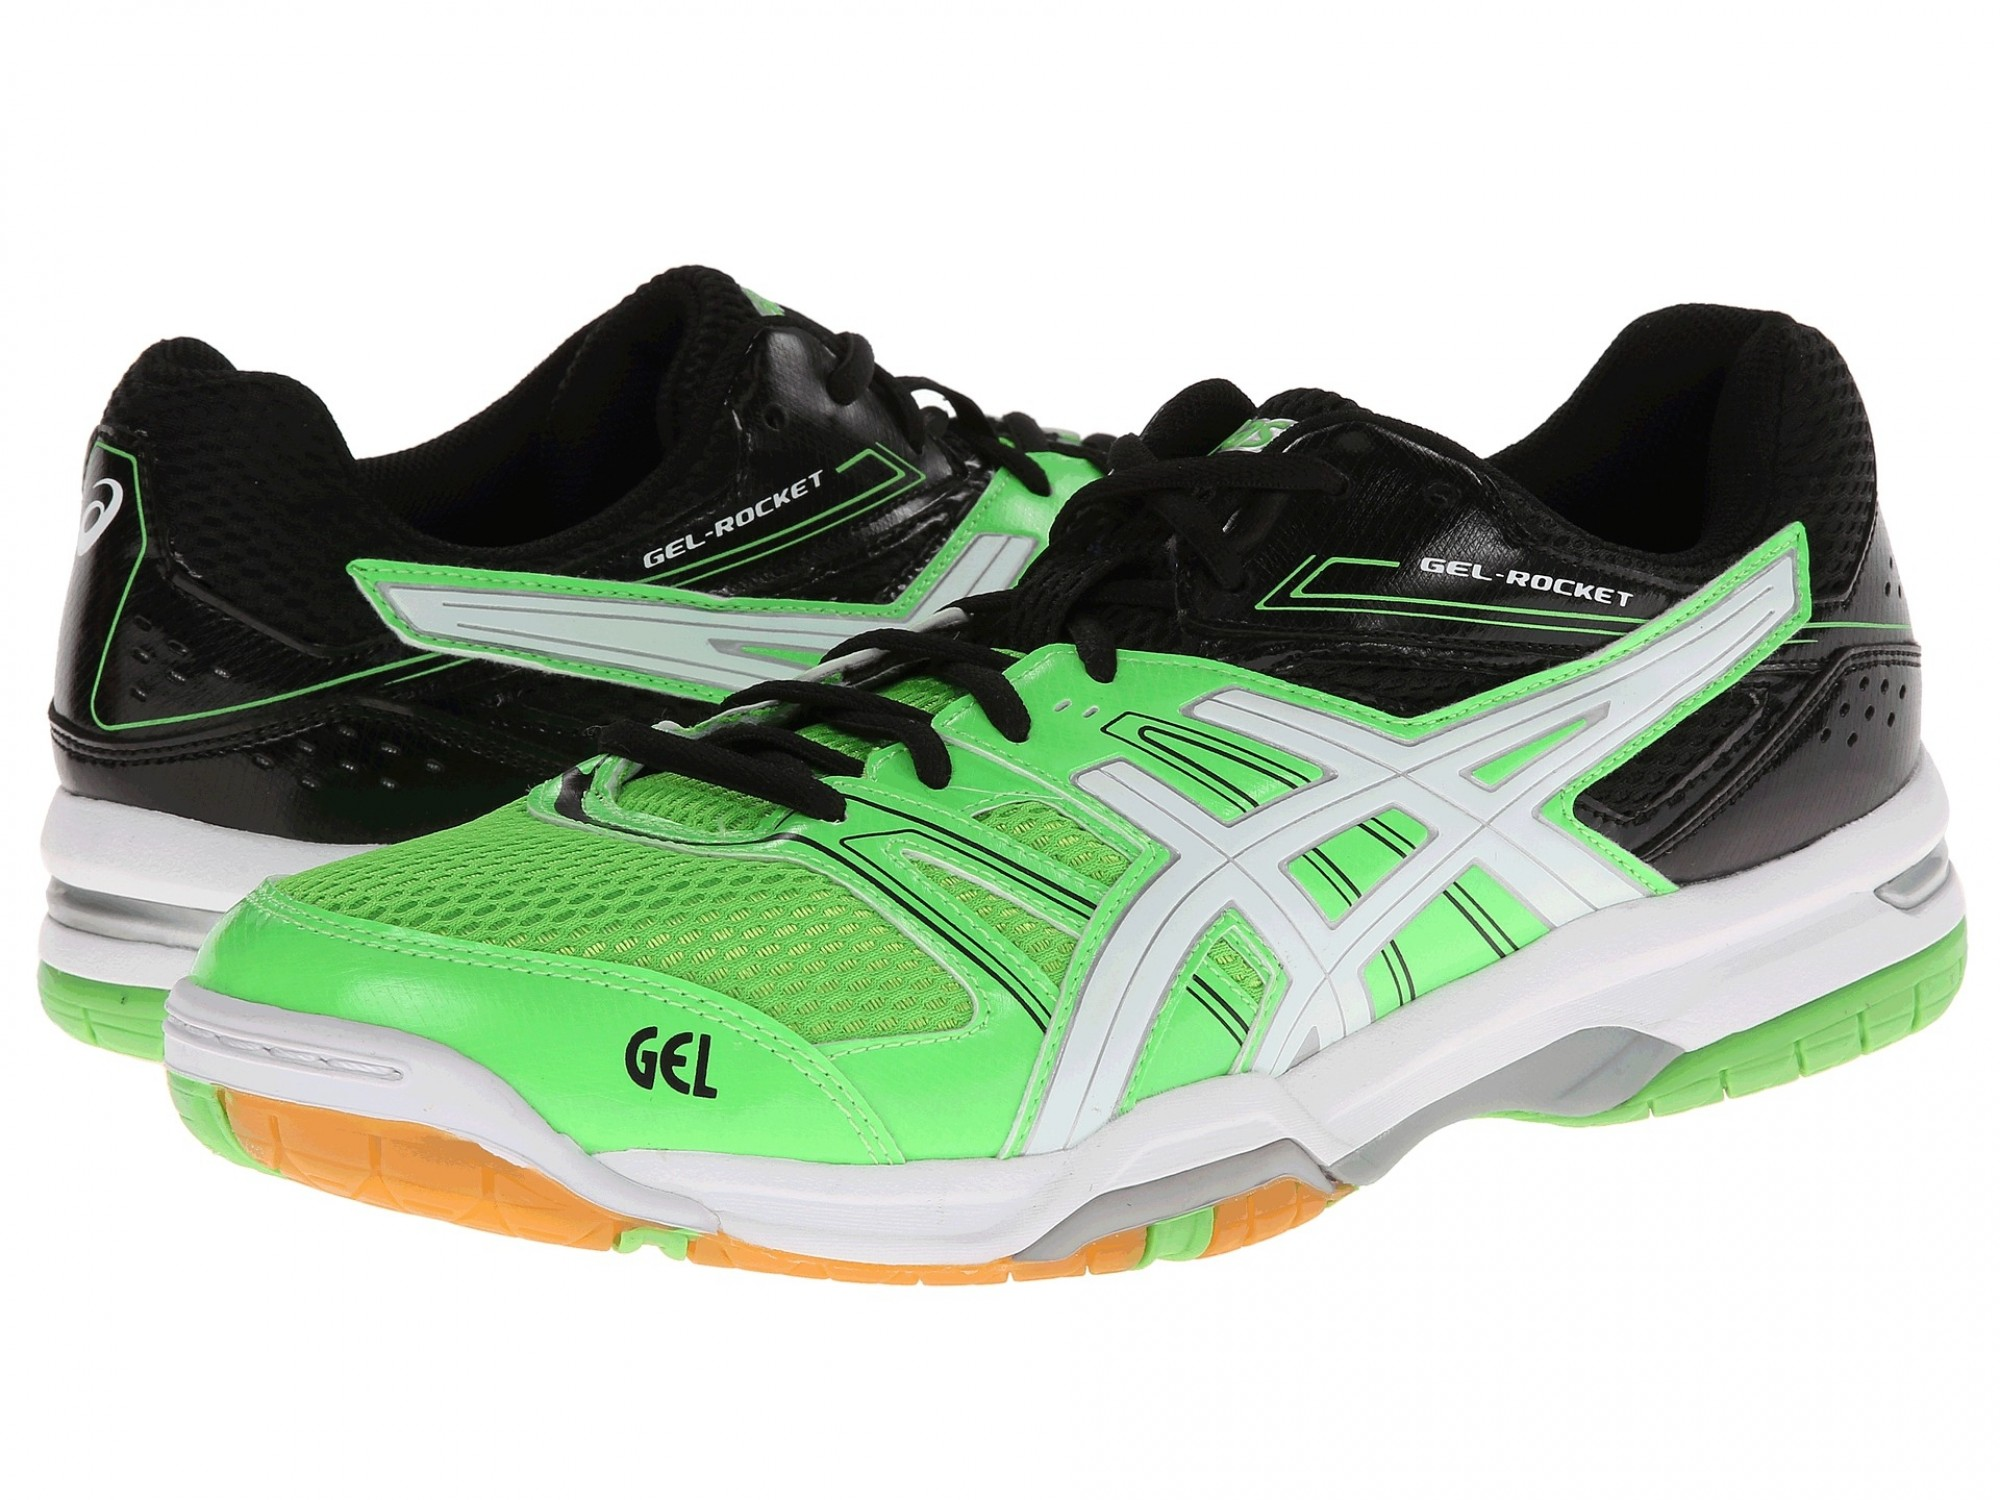 2d710b25 ASICS GEL-Rocket 7 (Neon Green/ White/ Black) Волейбольные кроссовки ...